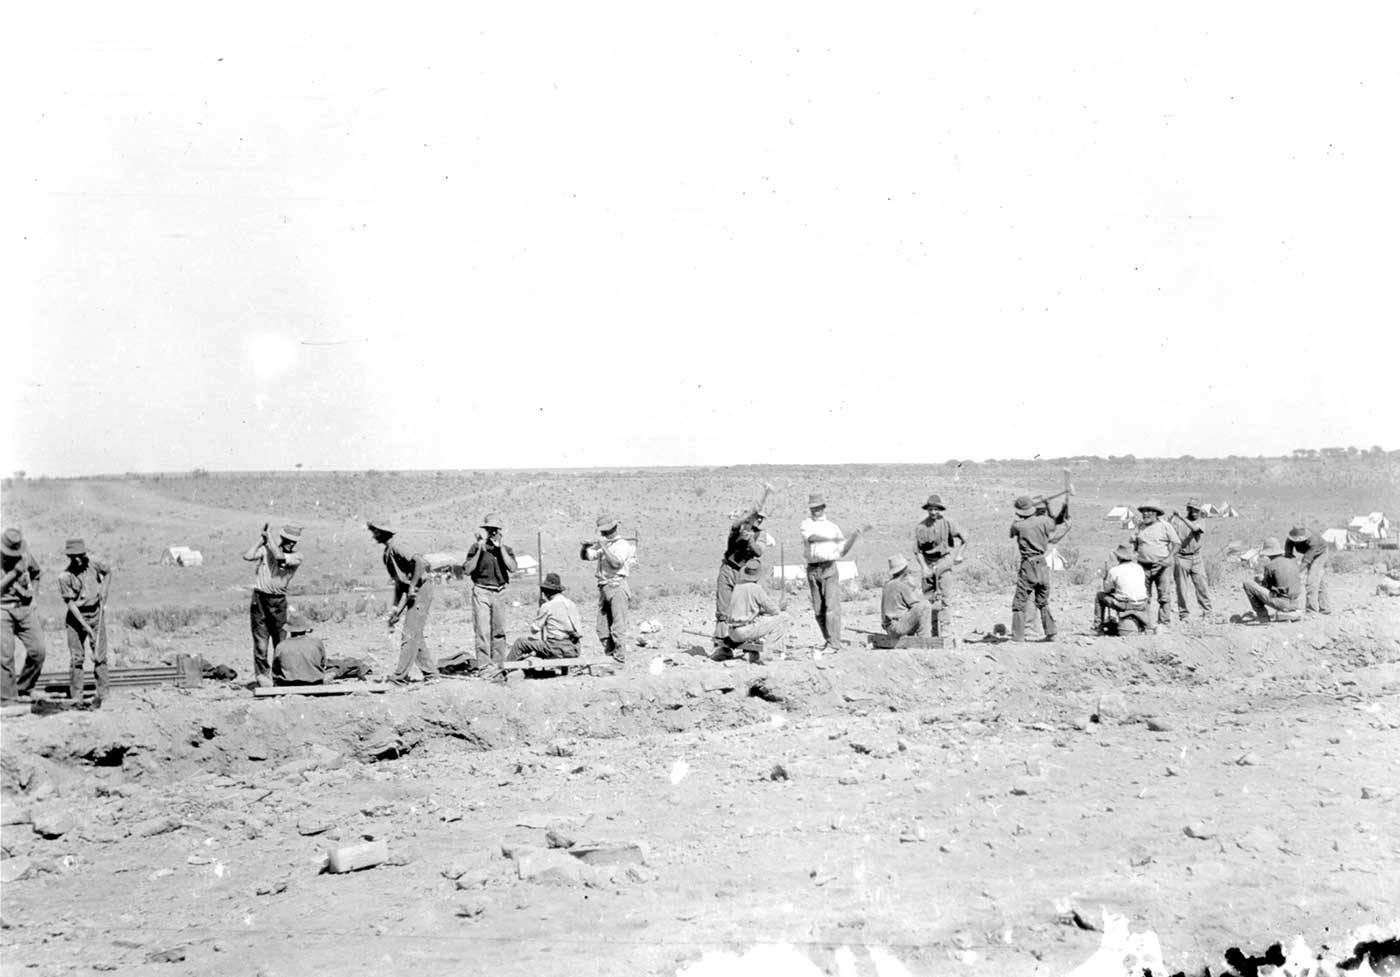 A black and white photo of railway construction workers in the desert.